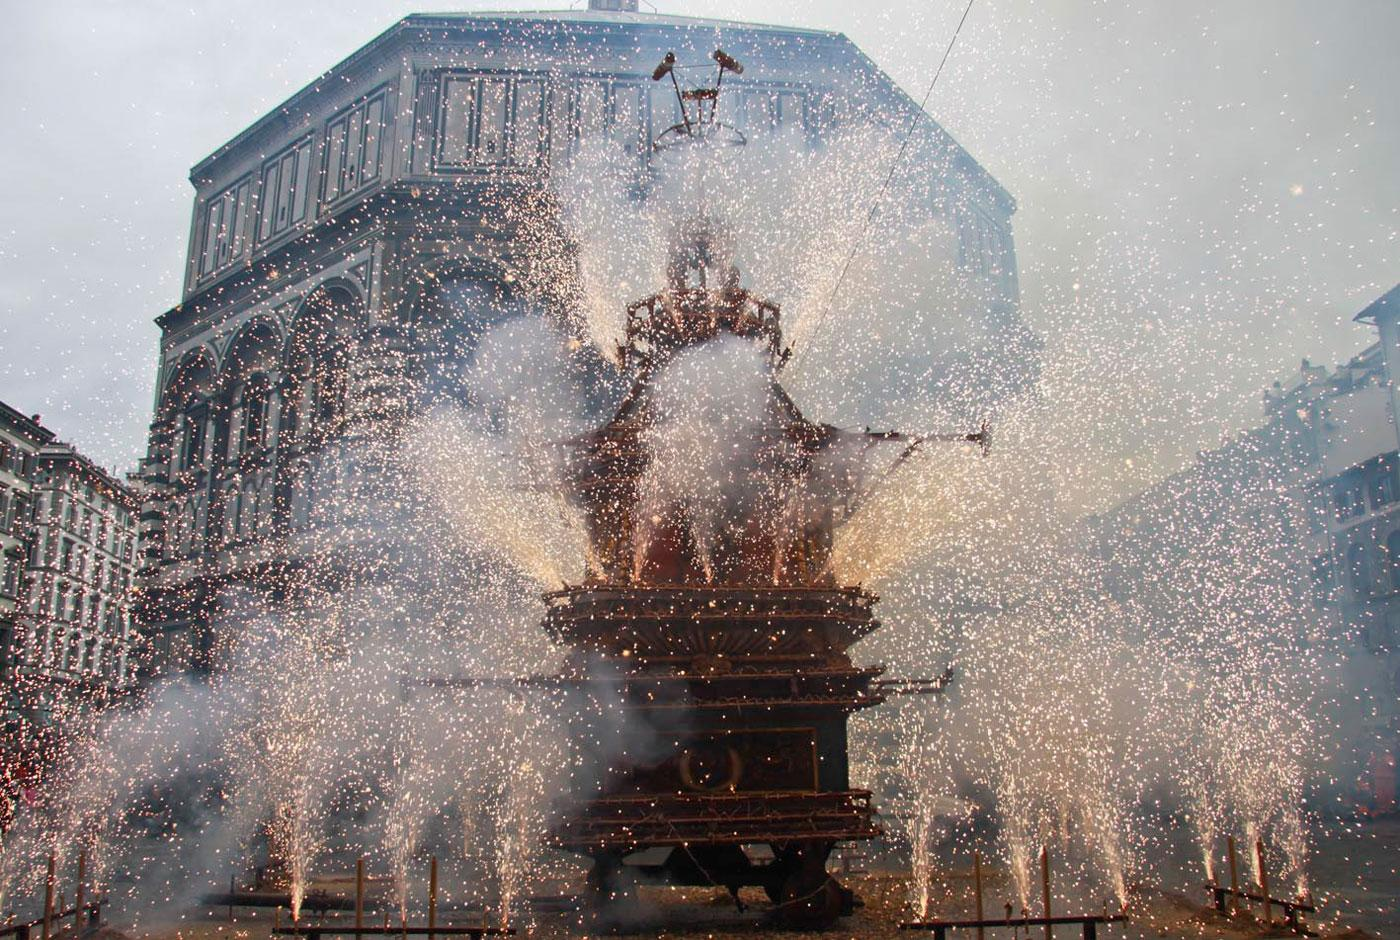 Scoppio Del Carro, or Explosion of the Cart, an Easter tradition in Florence.